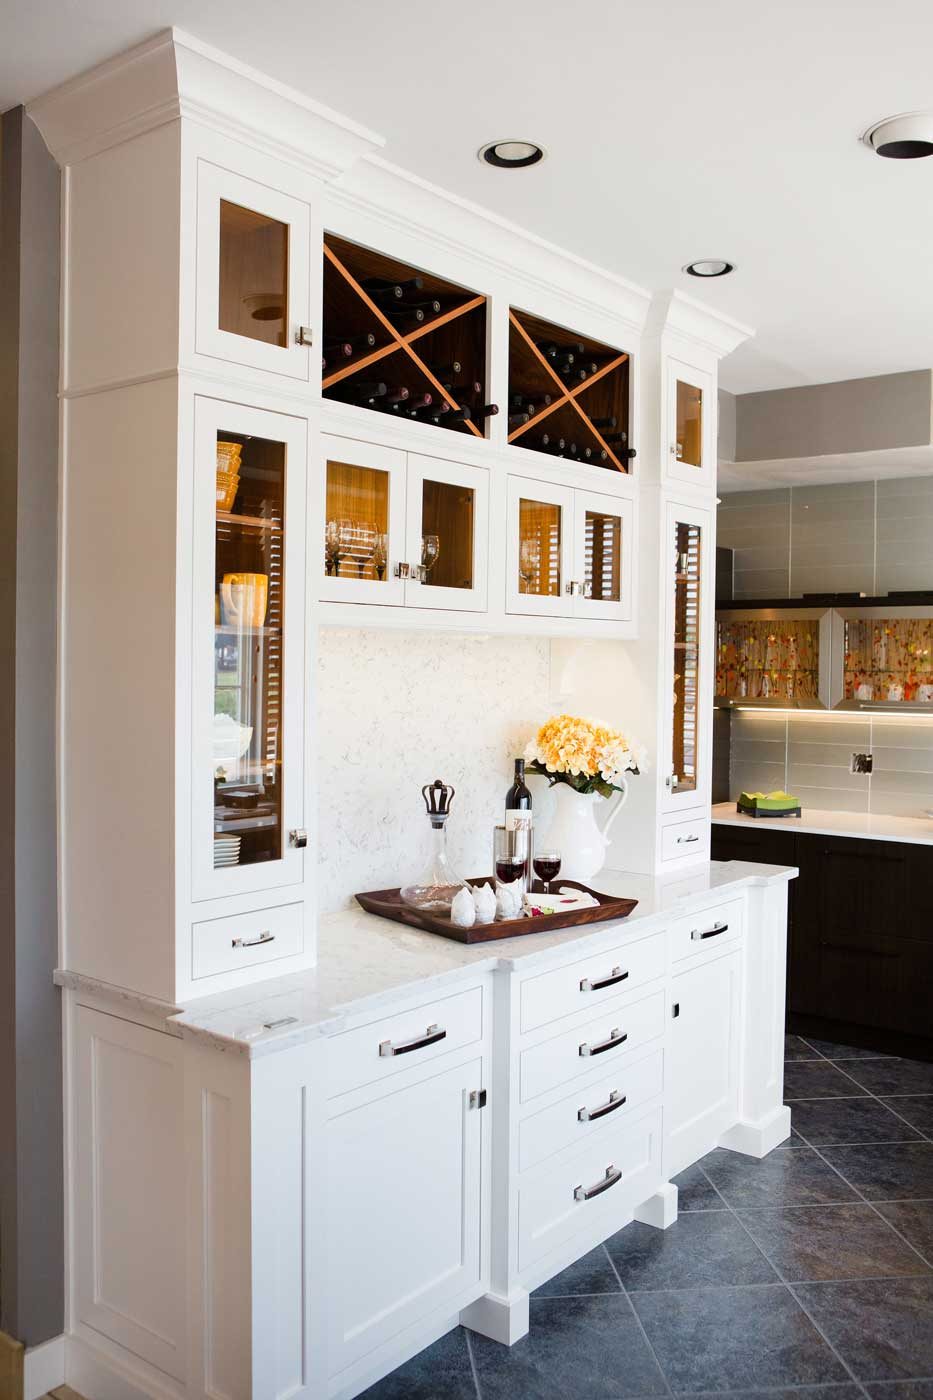 kitchen ideas and inspiration | harrisburg pa resources